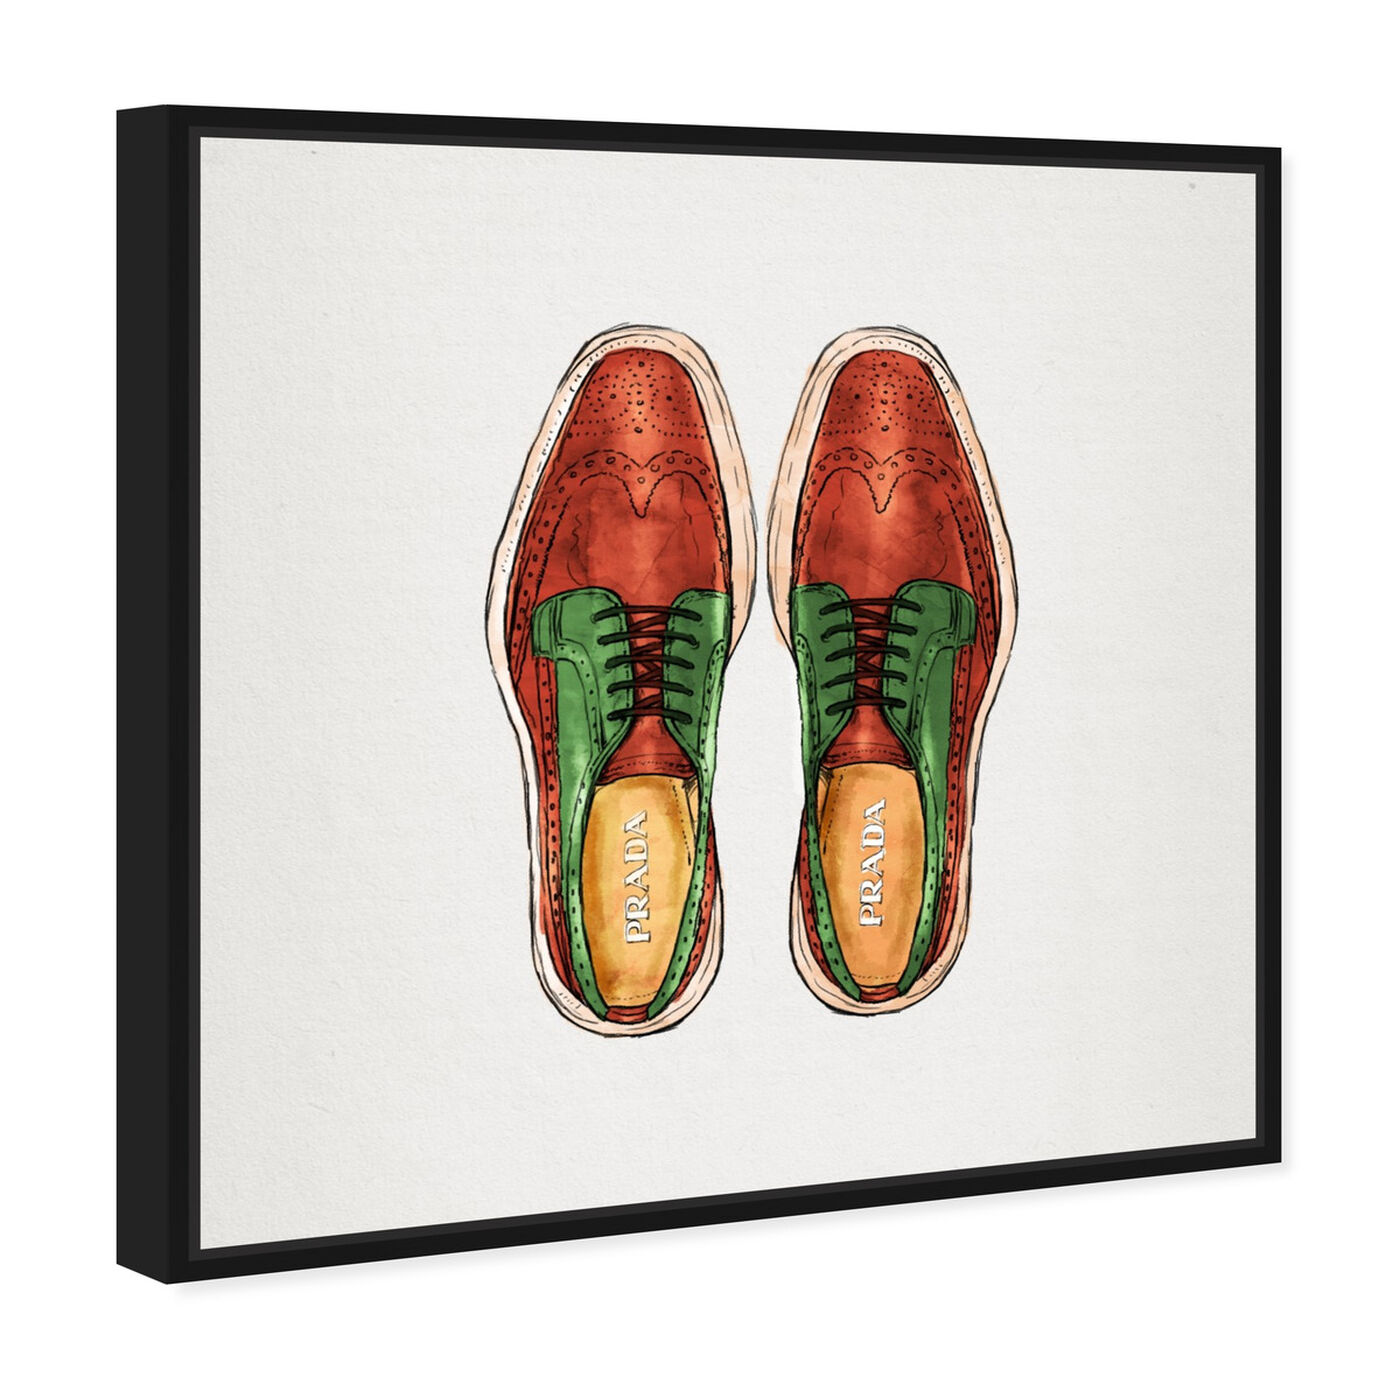 Angled view of His Wingtips featuring fashion and glam and shoes art.